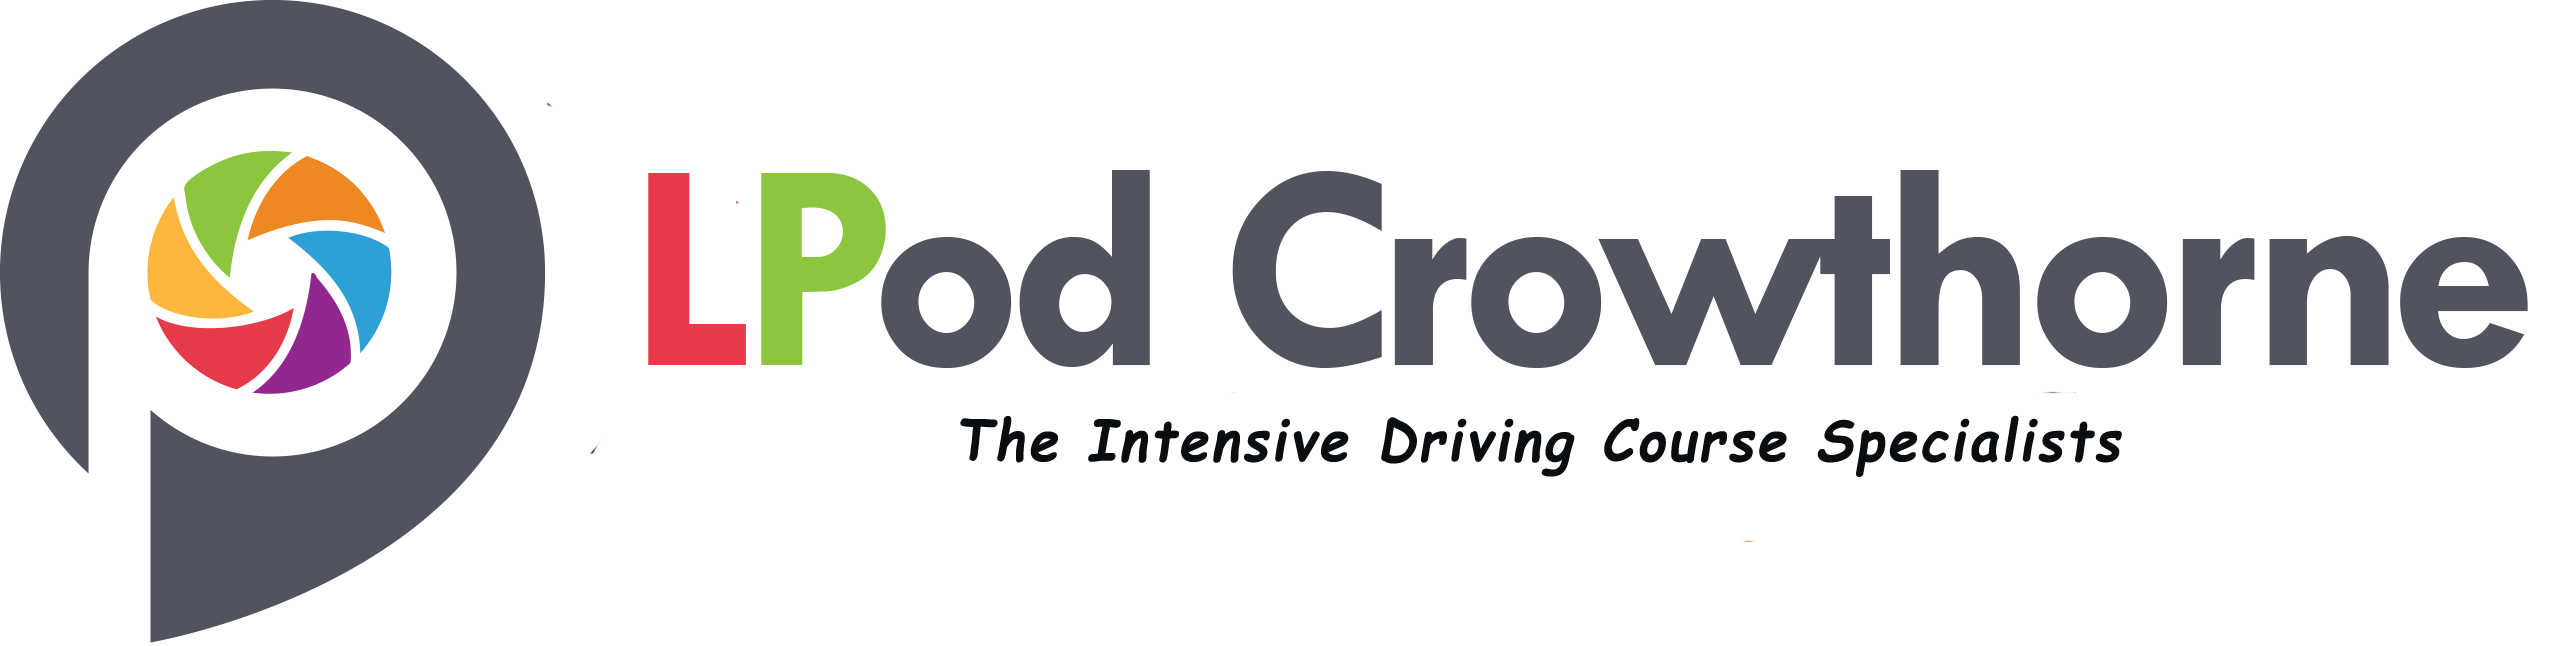 intensive driving courses crowthorne, one week driving courses crowthorne, crash driving courses crowthorne LPOD Academy Crowthorne